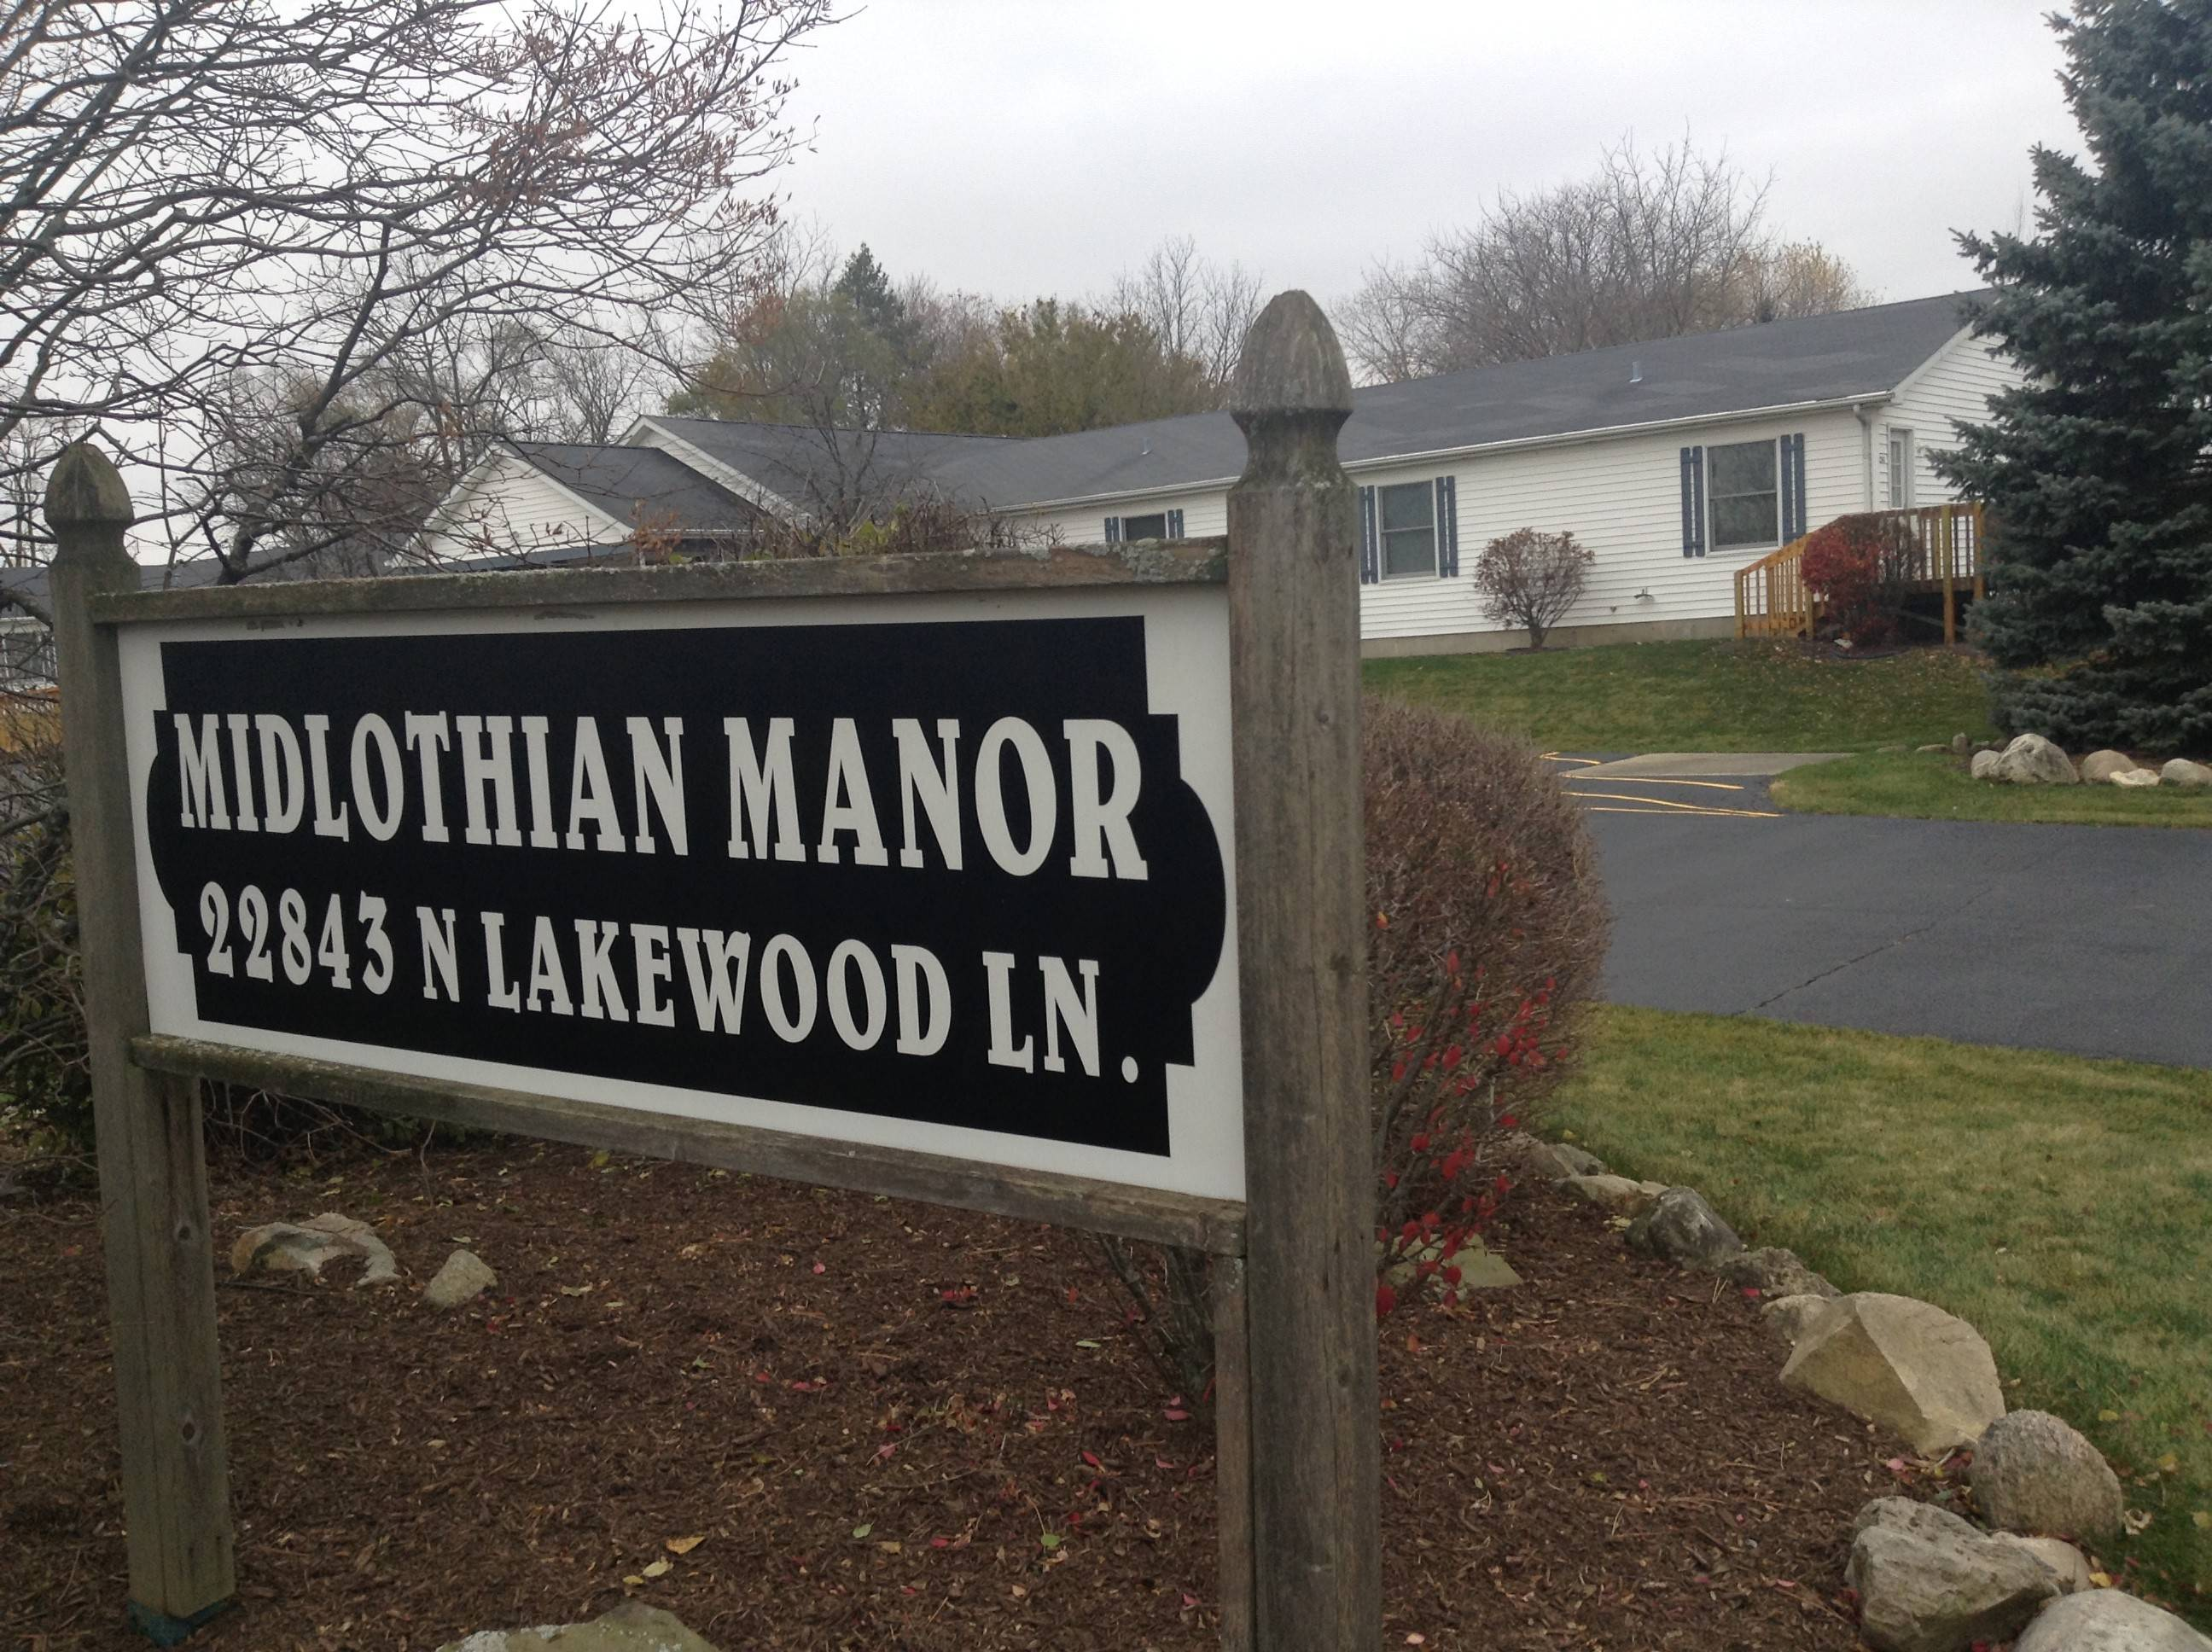 Lake Zurich Unit District 95 officials say they want to be included in talks about plans to place chronically homeless people with mental illness in the vacant Midlothian Manor, which is near two schools.